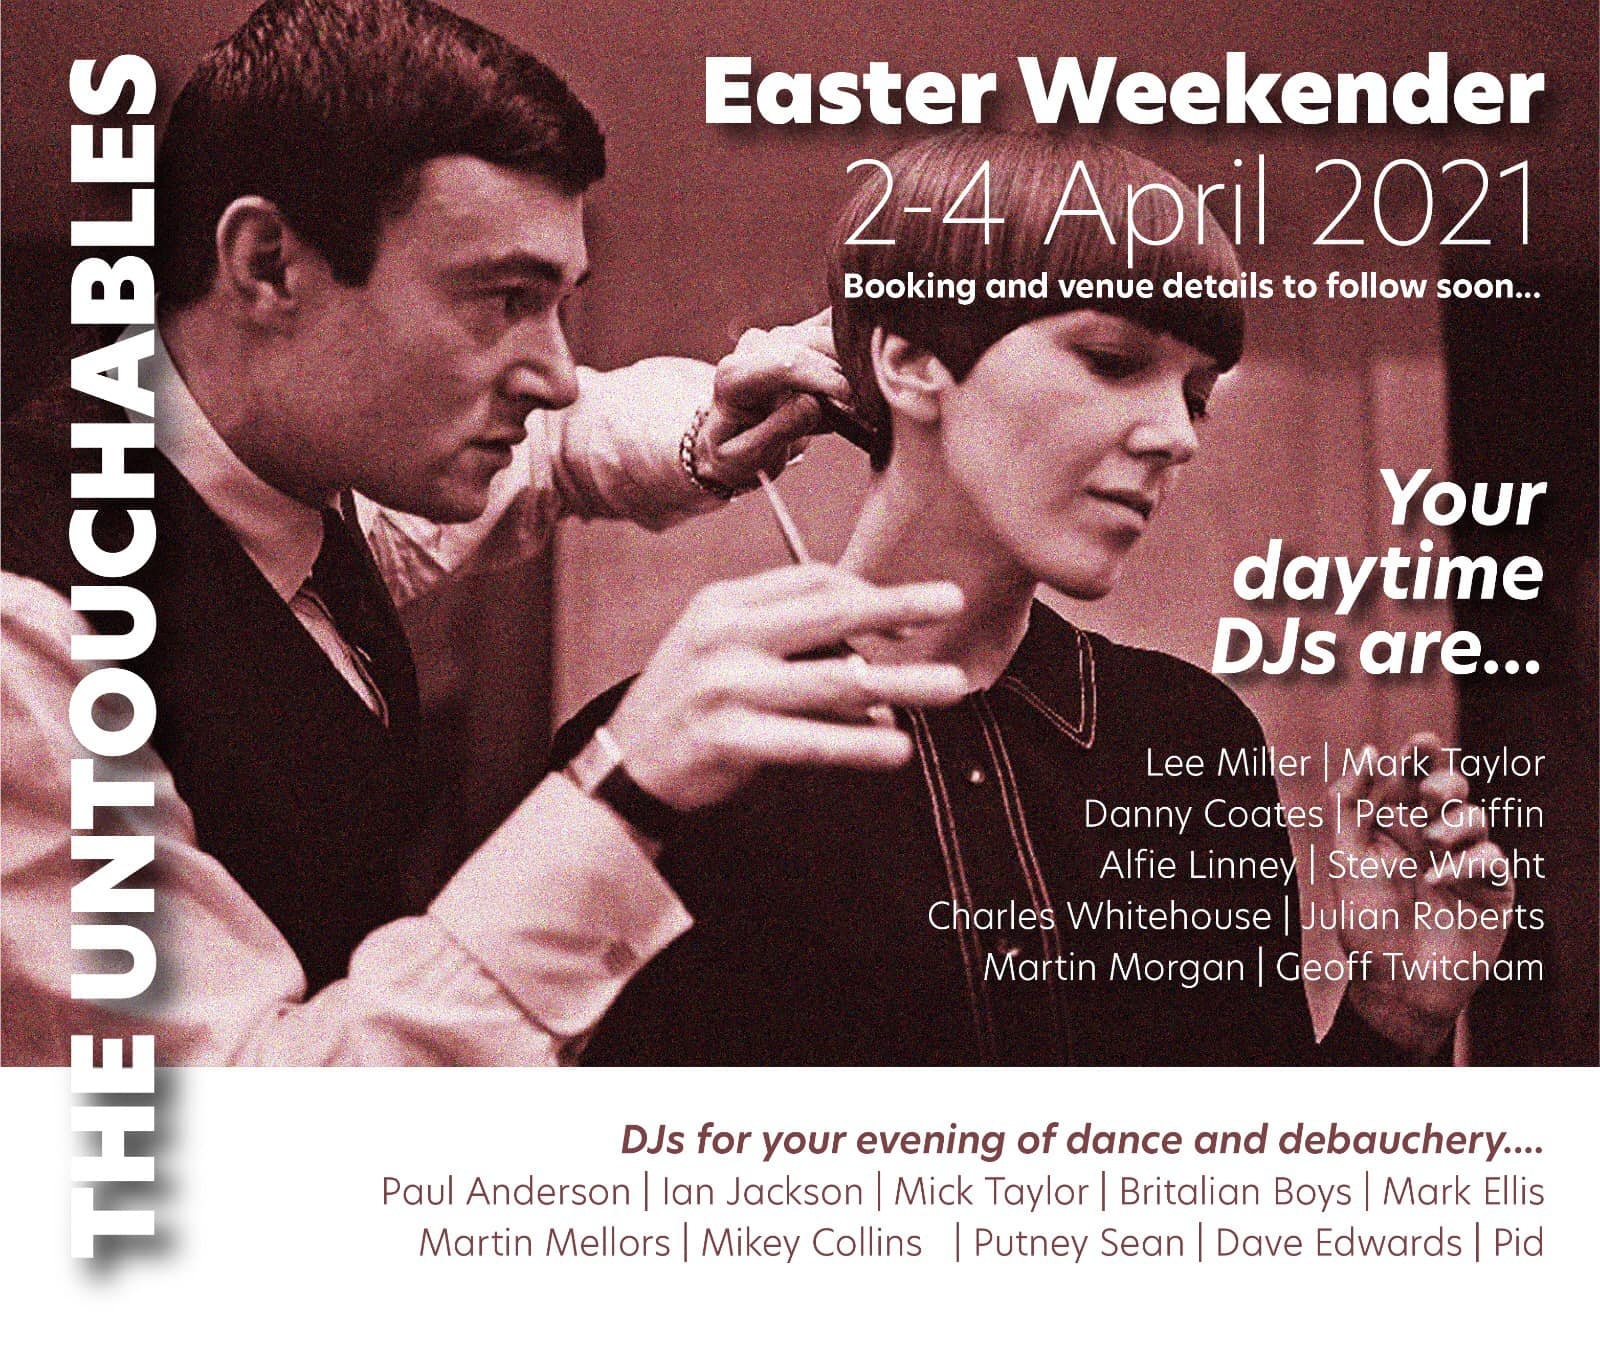 The Untouchables - Mod Weekender, Easter Weekend 2021